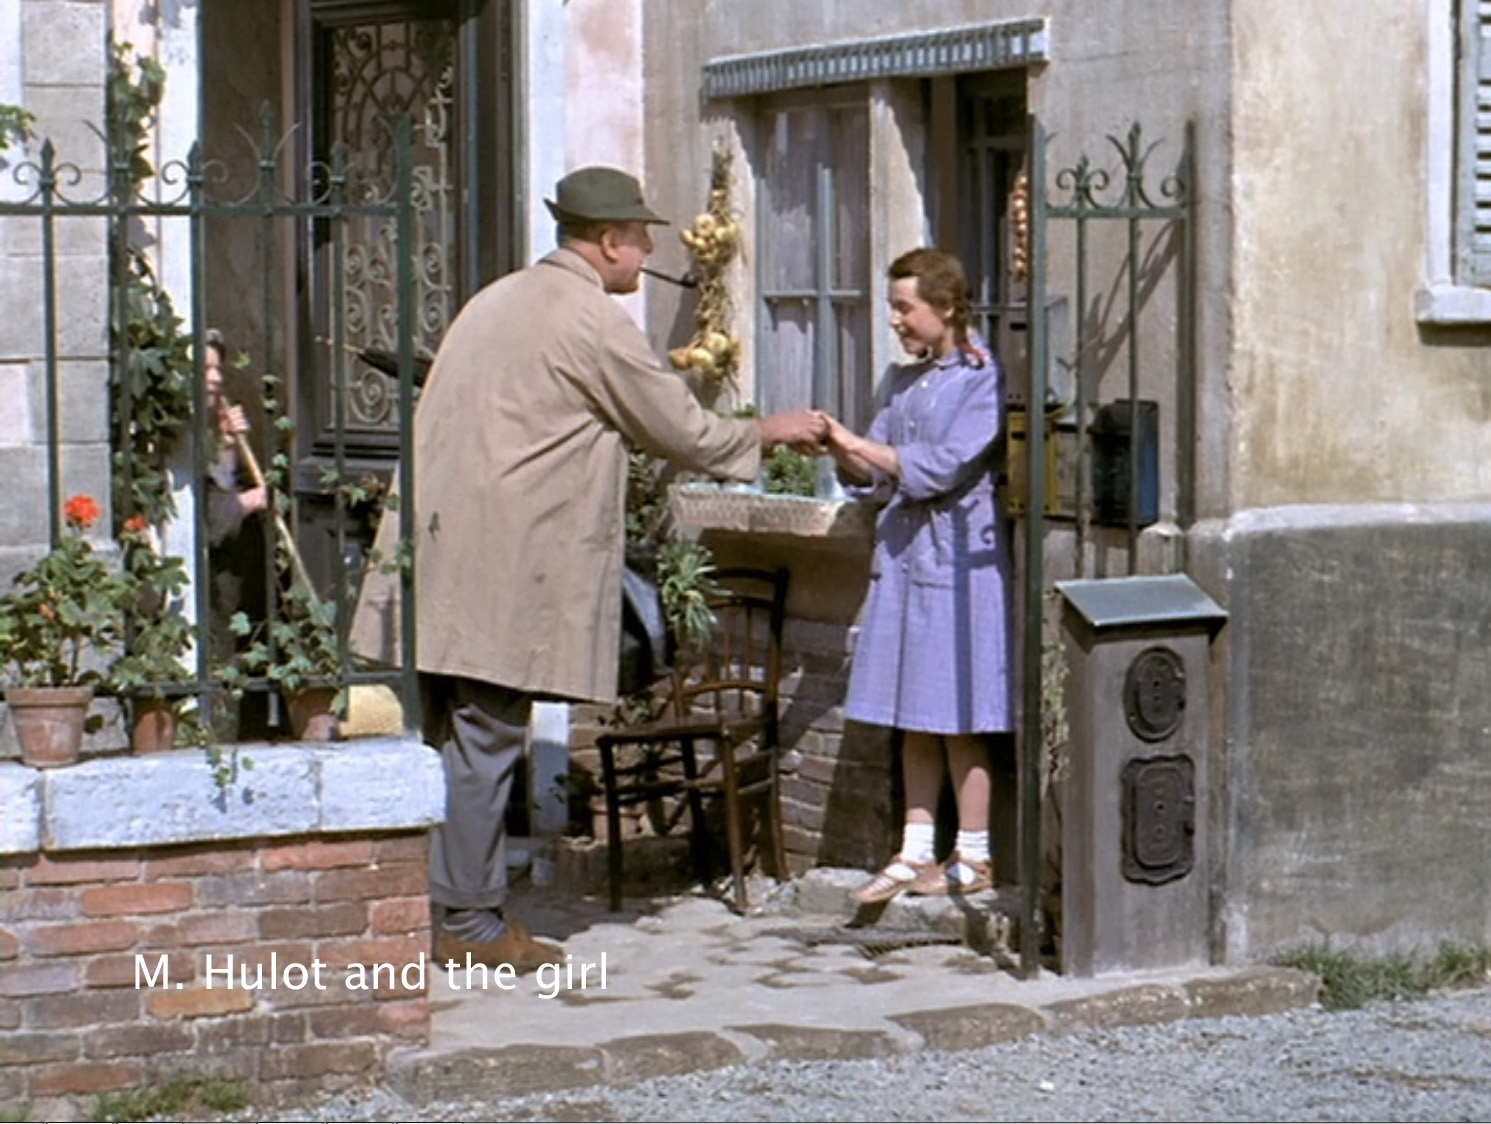 M. Hulot and the girl